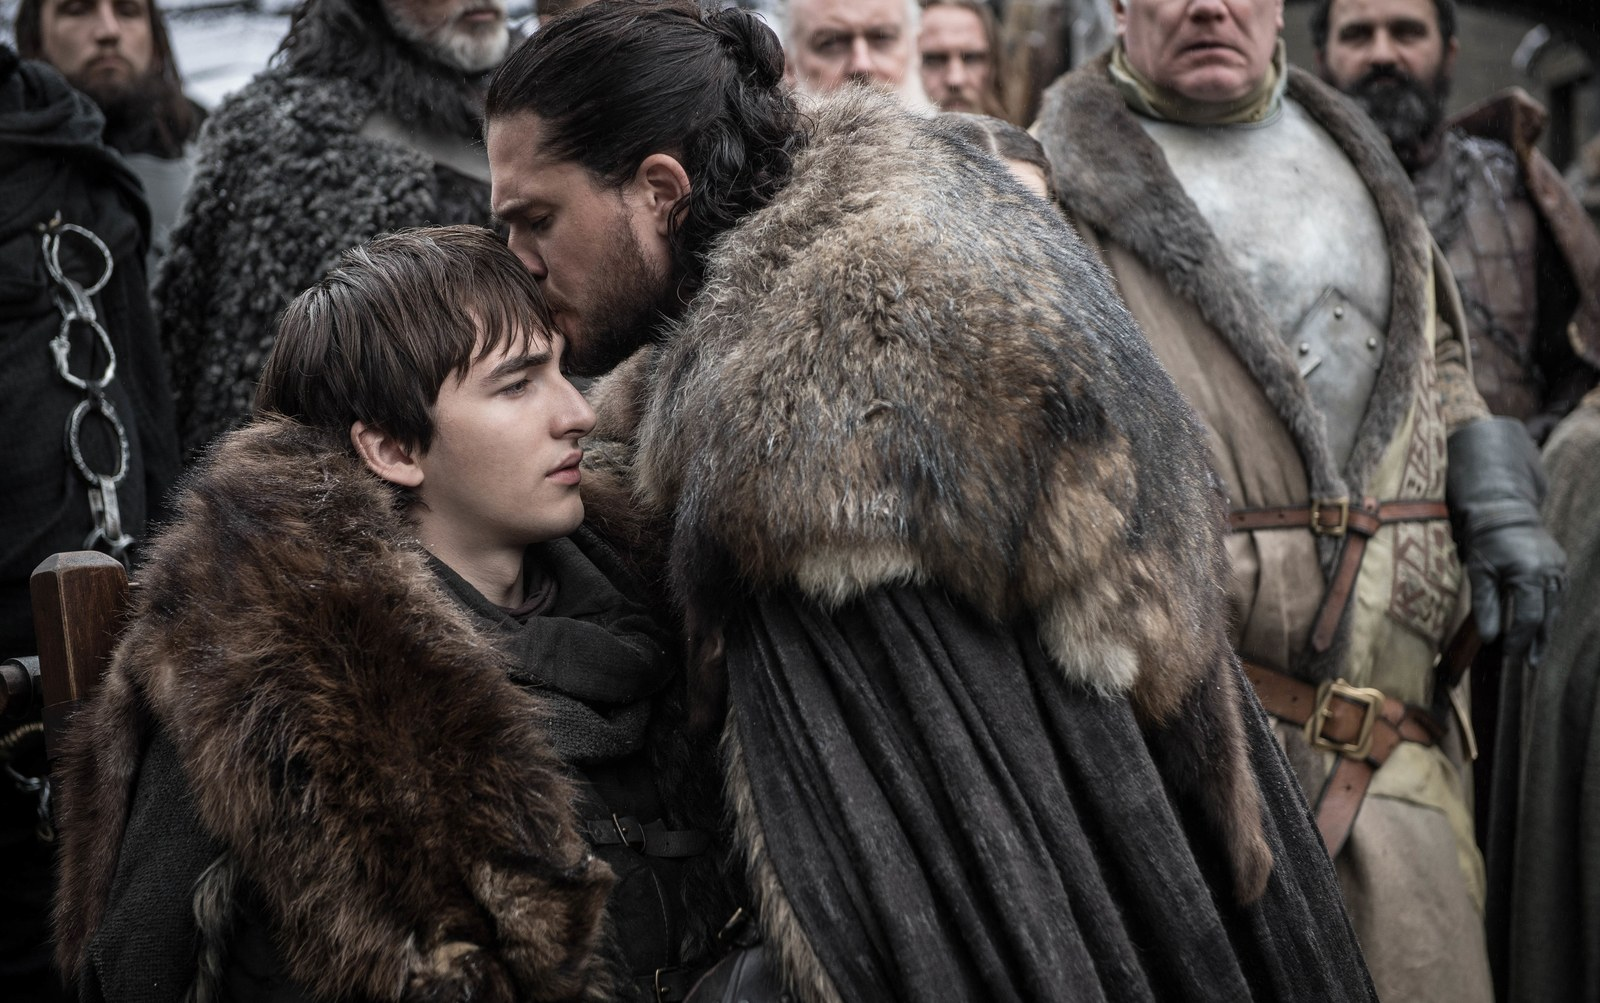 Bran Stark and Jon Snow on HBO's Game of Thrones